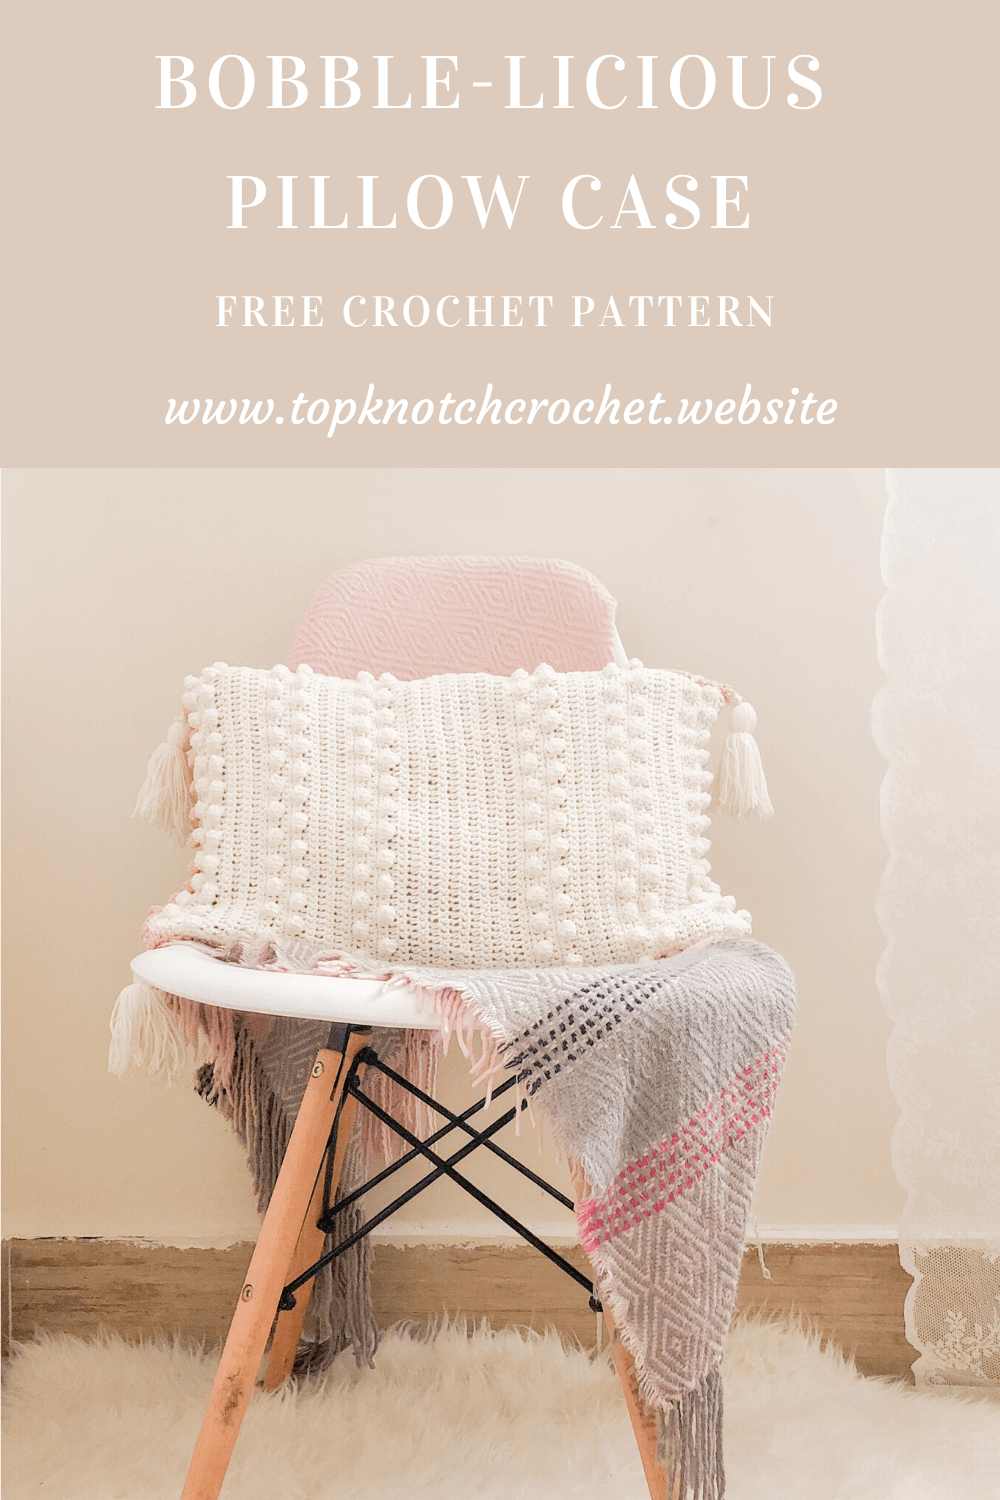 Bobble-licious Crochet Pillow Case Free Pattern